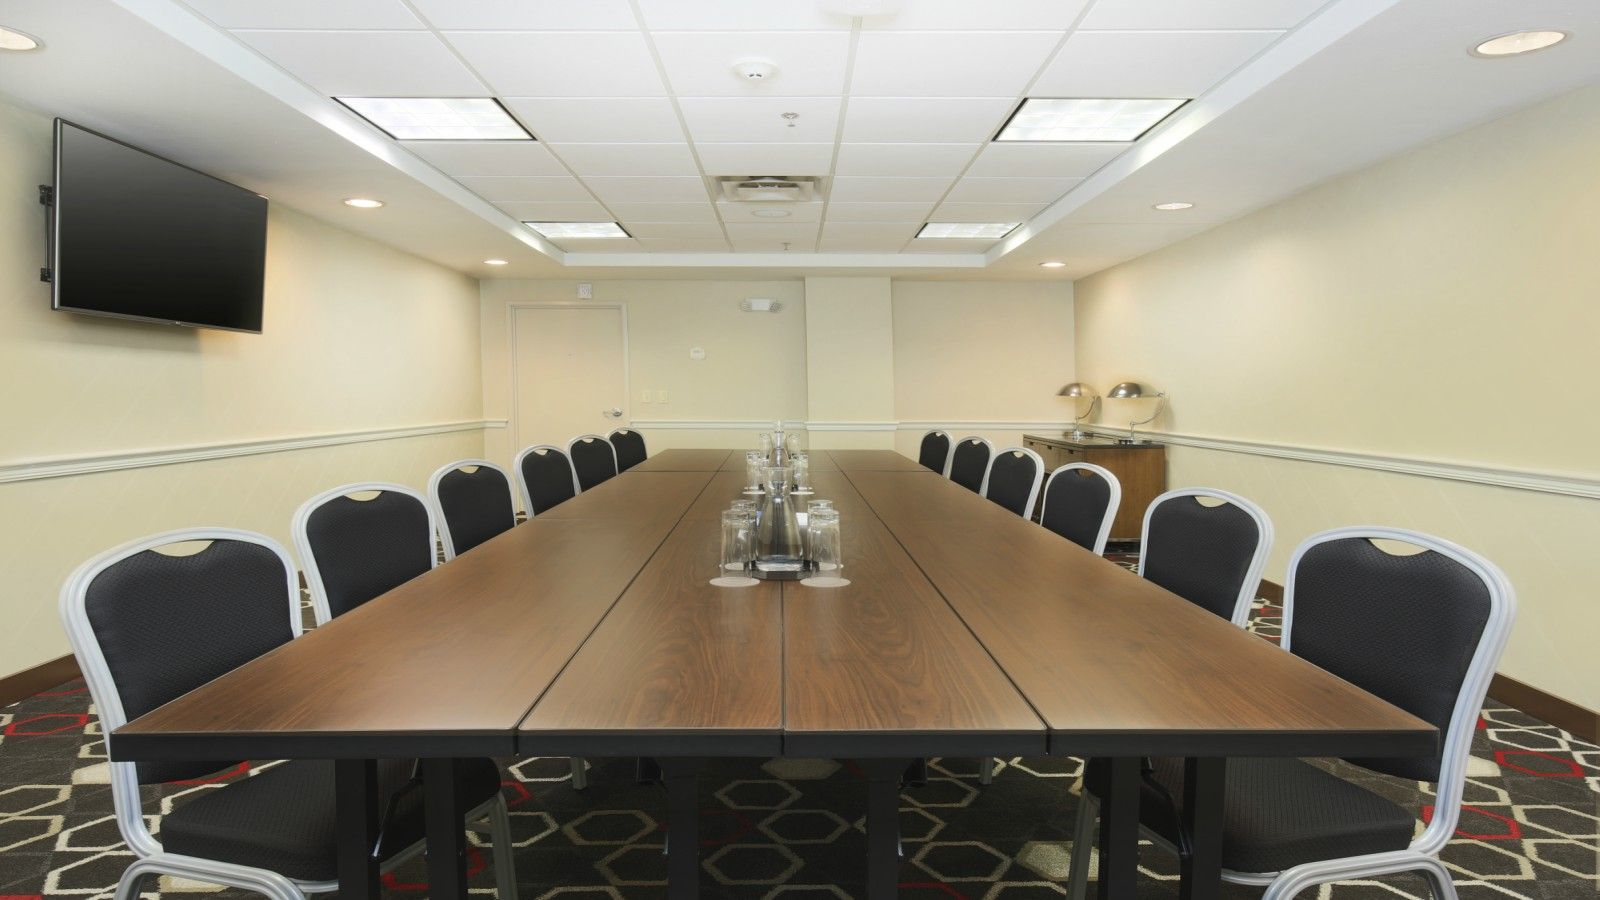 Meeting Rooms in Bentonville, AR - Compass Boardroom